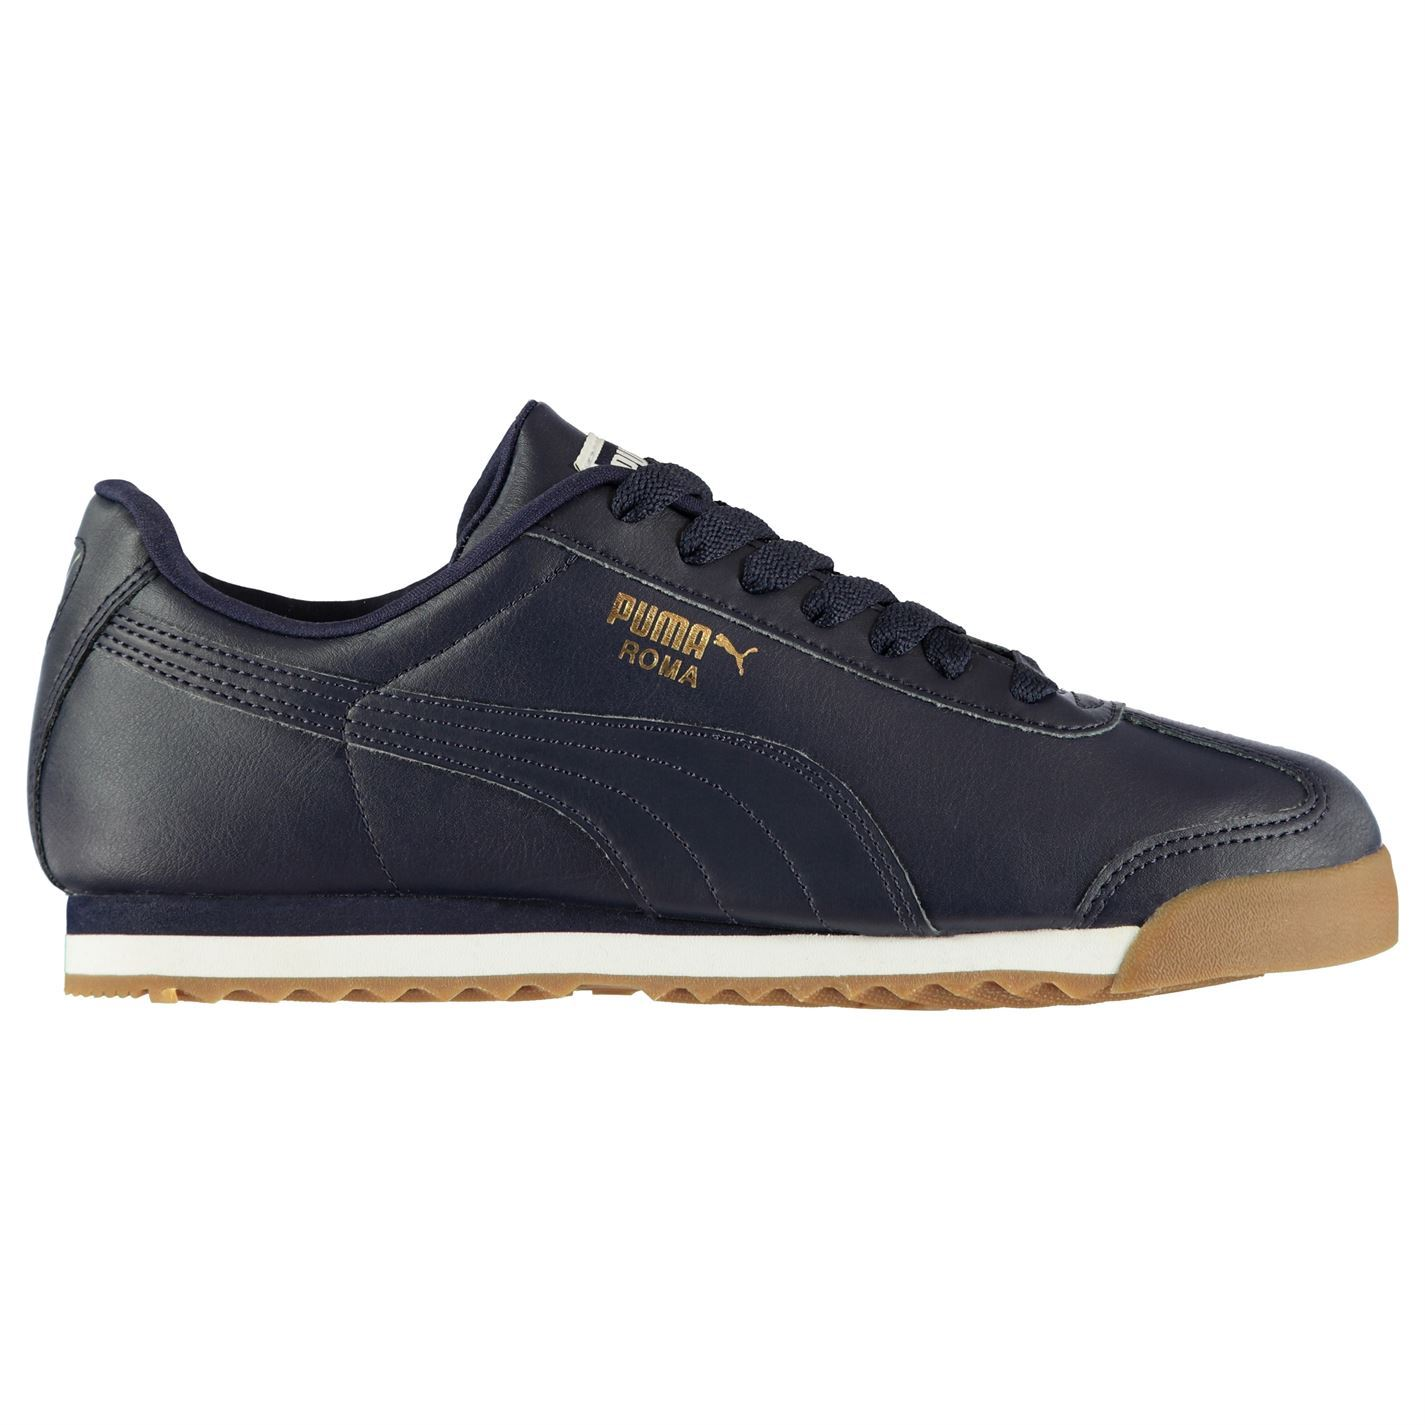 Puma-Roma-Basic-Trainers-Mens-Athleisure-Footwear-Shoes-Sneakers thumbnail 15